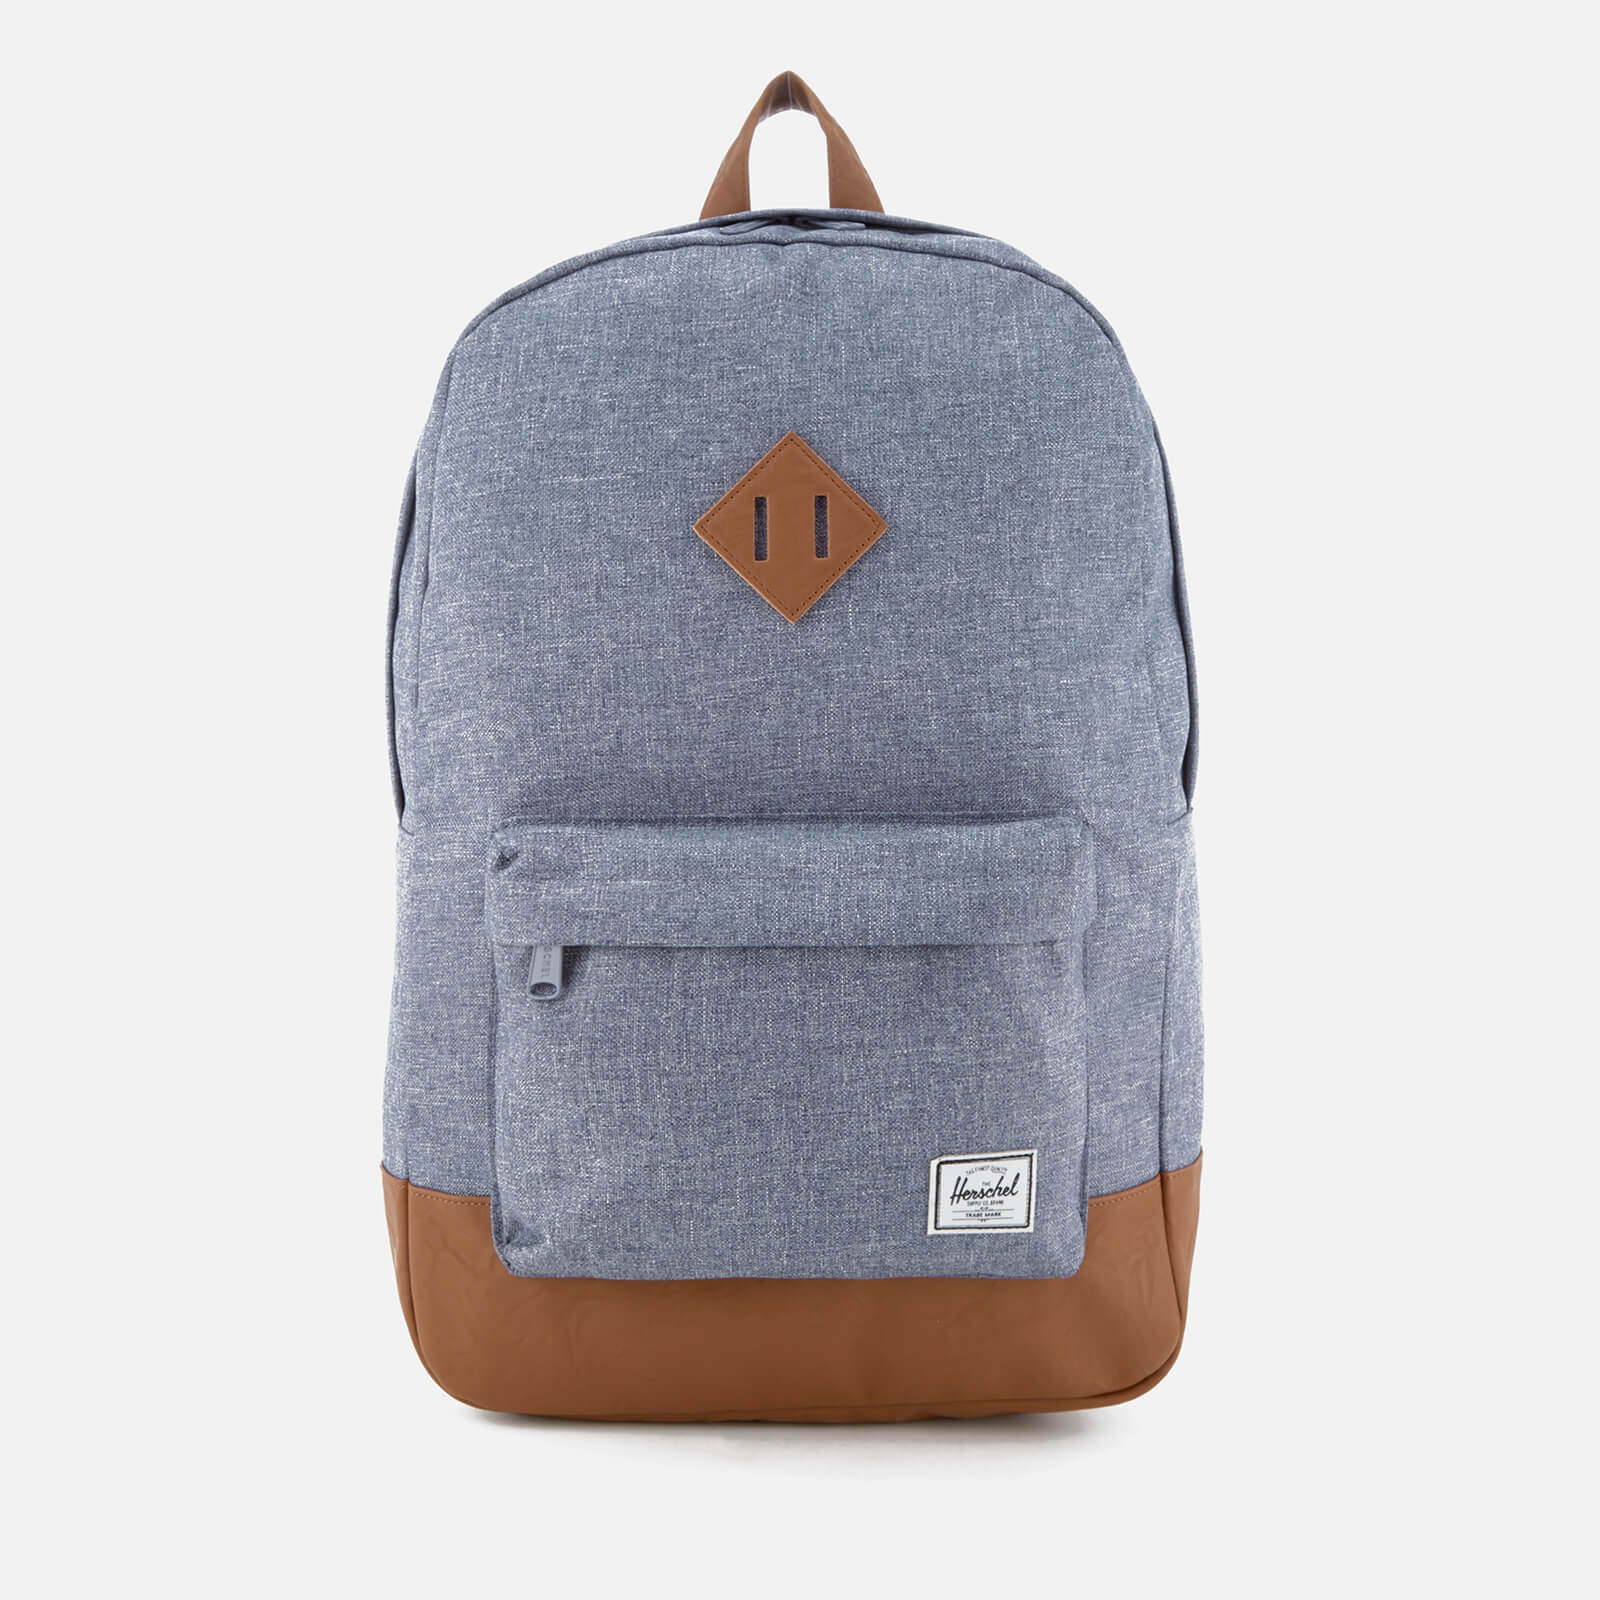 d893ce8b805 Herschel Supply Co. Heritage Backpack - Dark Chambray Crosshatch/Tan  Synthetic Leather - Free UK Delivery over £50